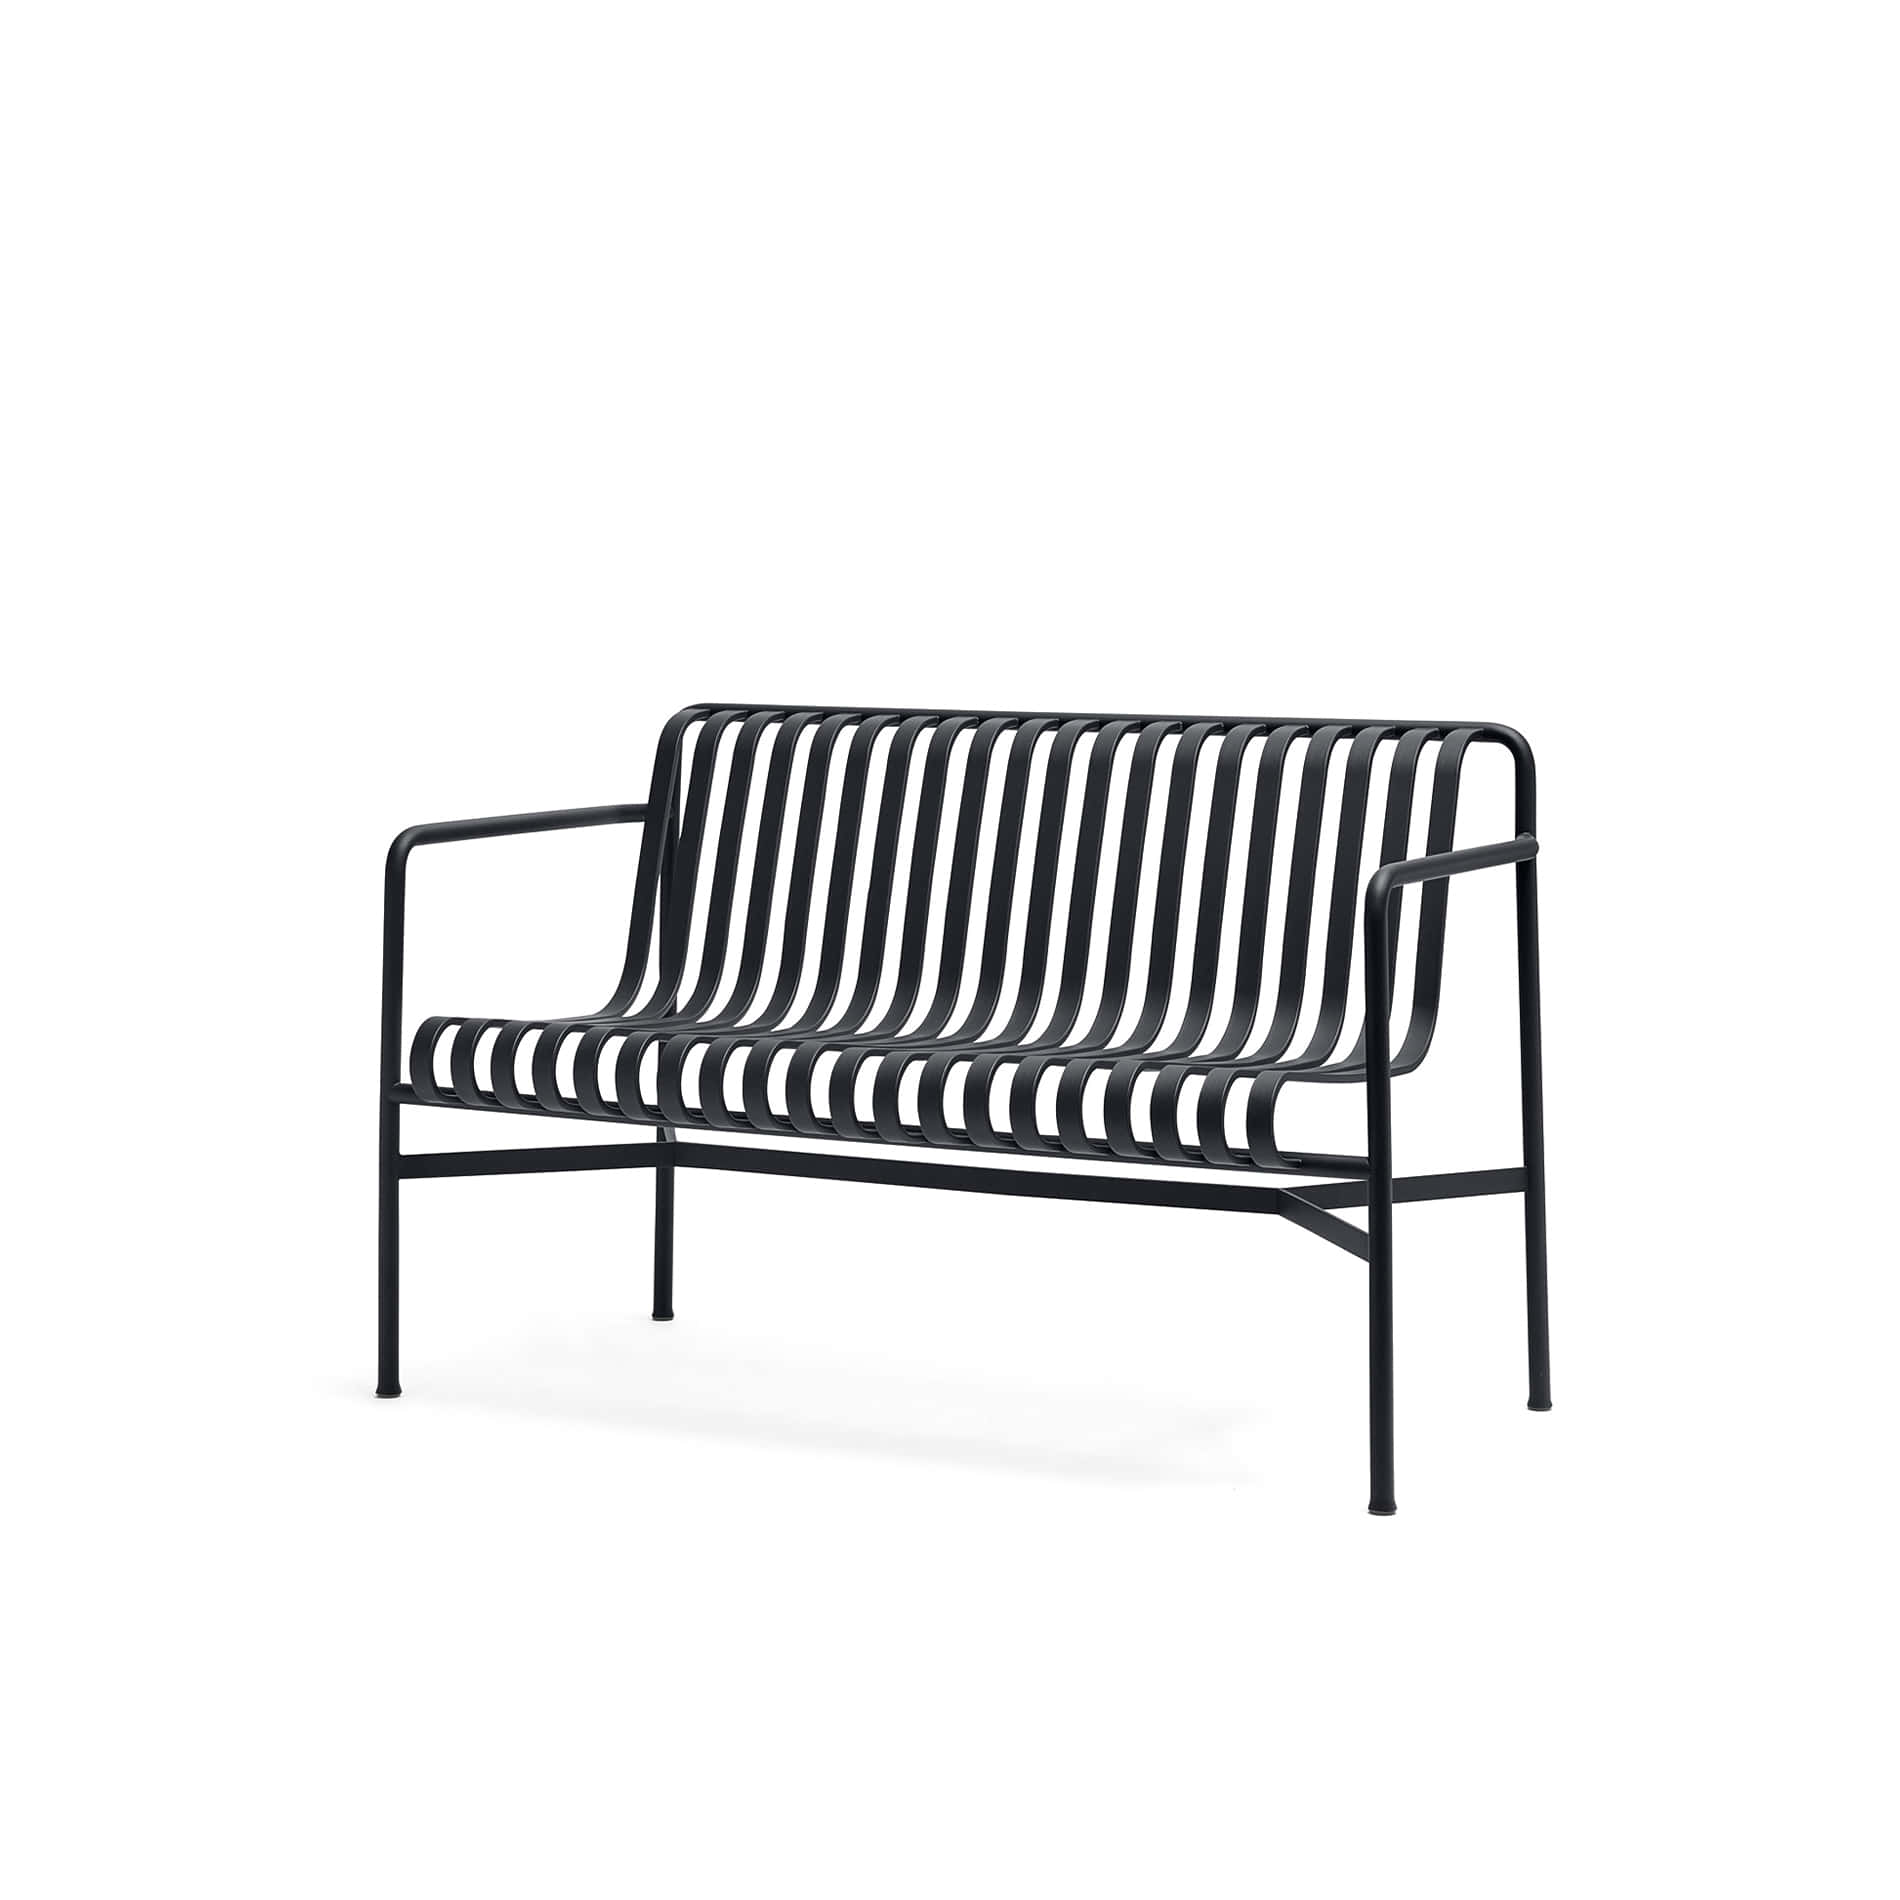 [HAY] Palissade Dining Bench Anthracite / 팔리사드 다이닝 벤치 흑색